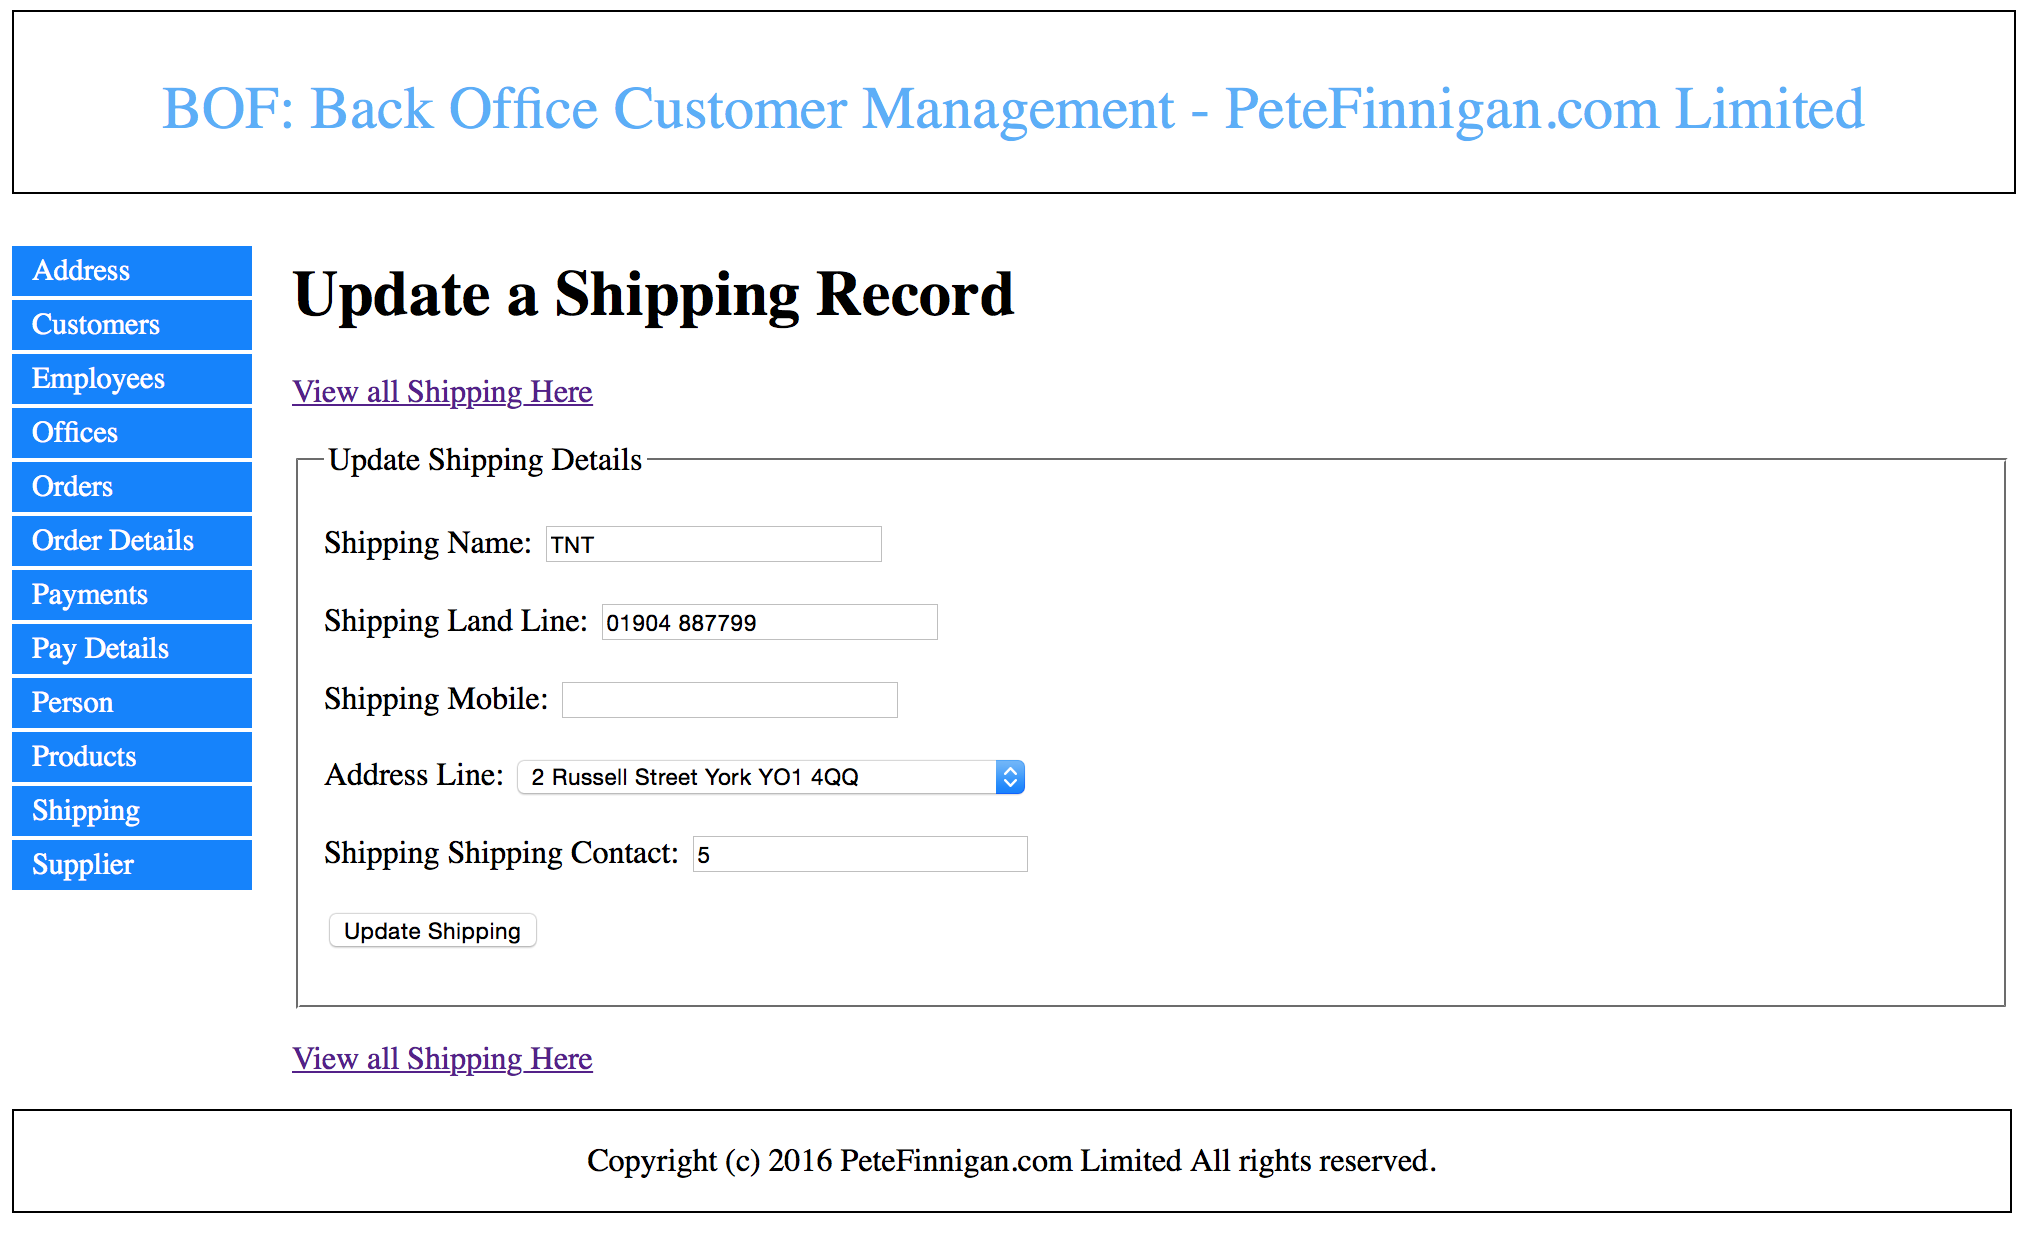 Screen to allow updates to a shipping record